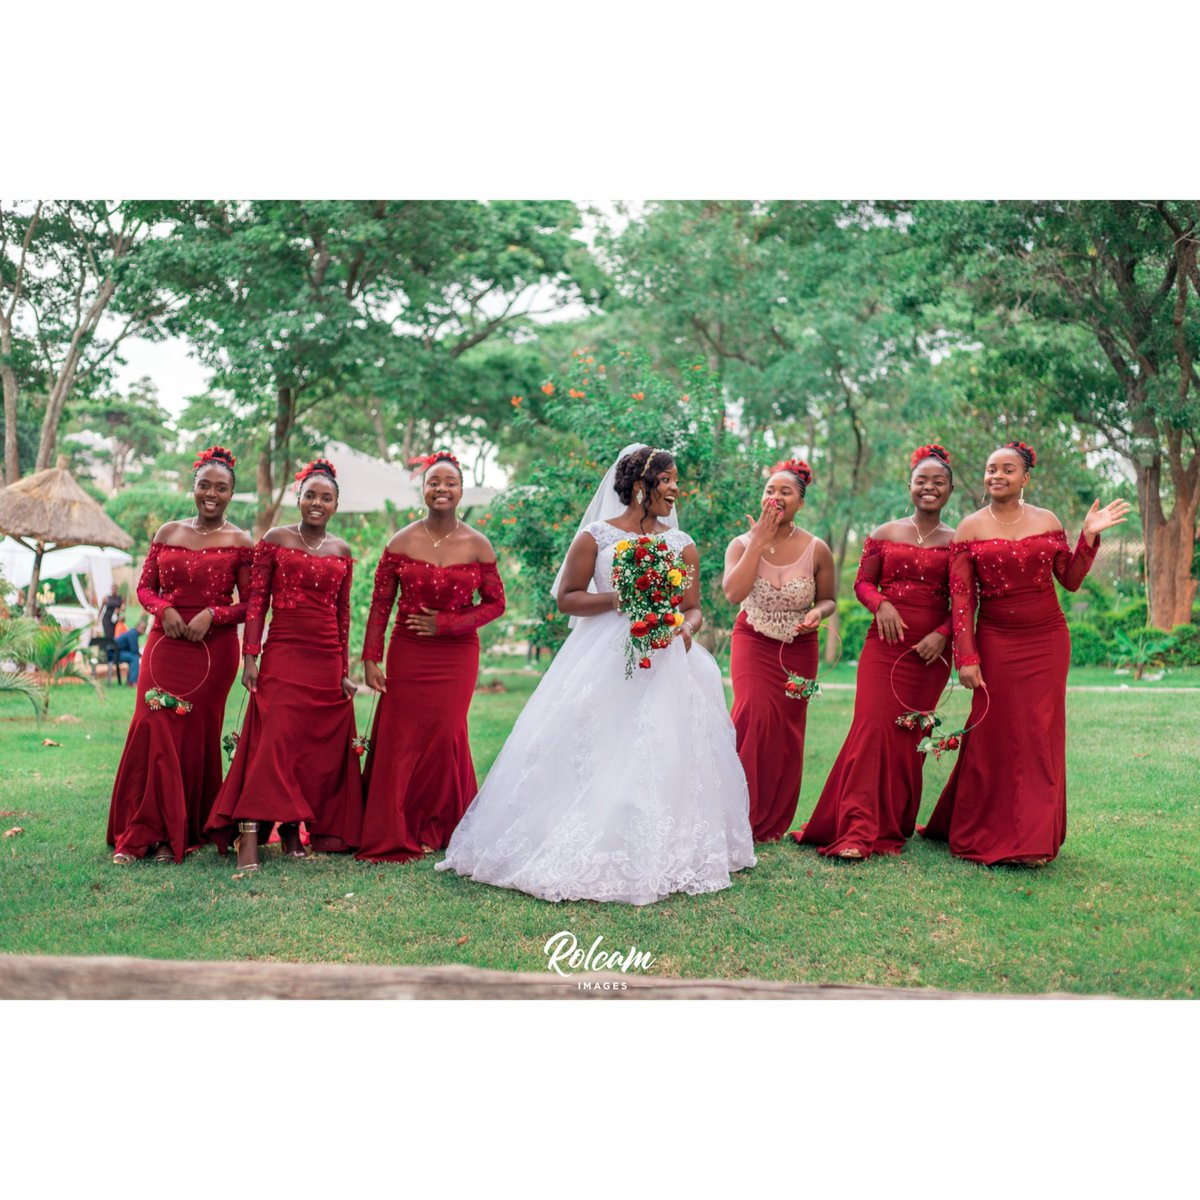 Zimbabwe Wedding Photographer On Twitter Remember The Dancing Bride And Her Maids Well There S No End To That Vibe Zimweddings Zimphotography Weddingphotographer Wedding Hararewedding Weddingdiaries Rolcamimages Canon Godox Nikon Https,Grandmother Bride Dress Wedding Pant Suits For Grandmothers